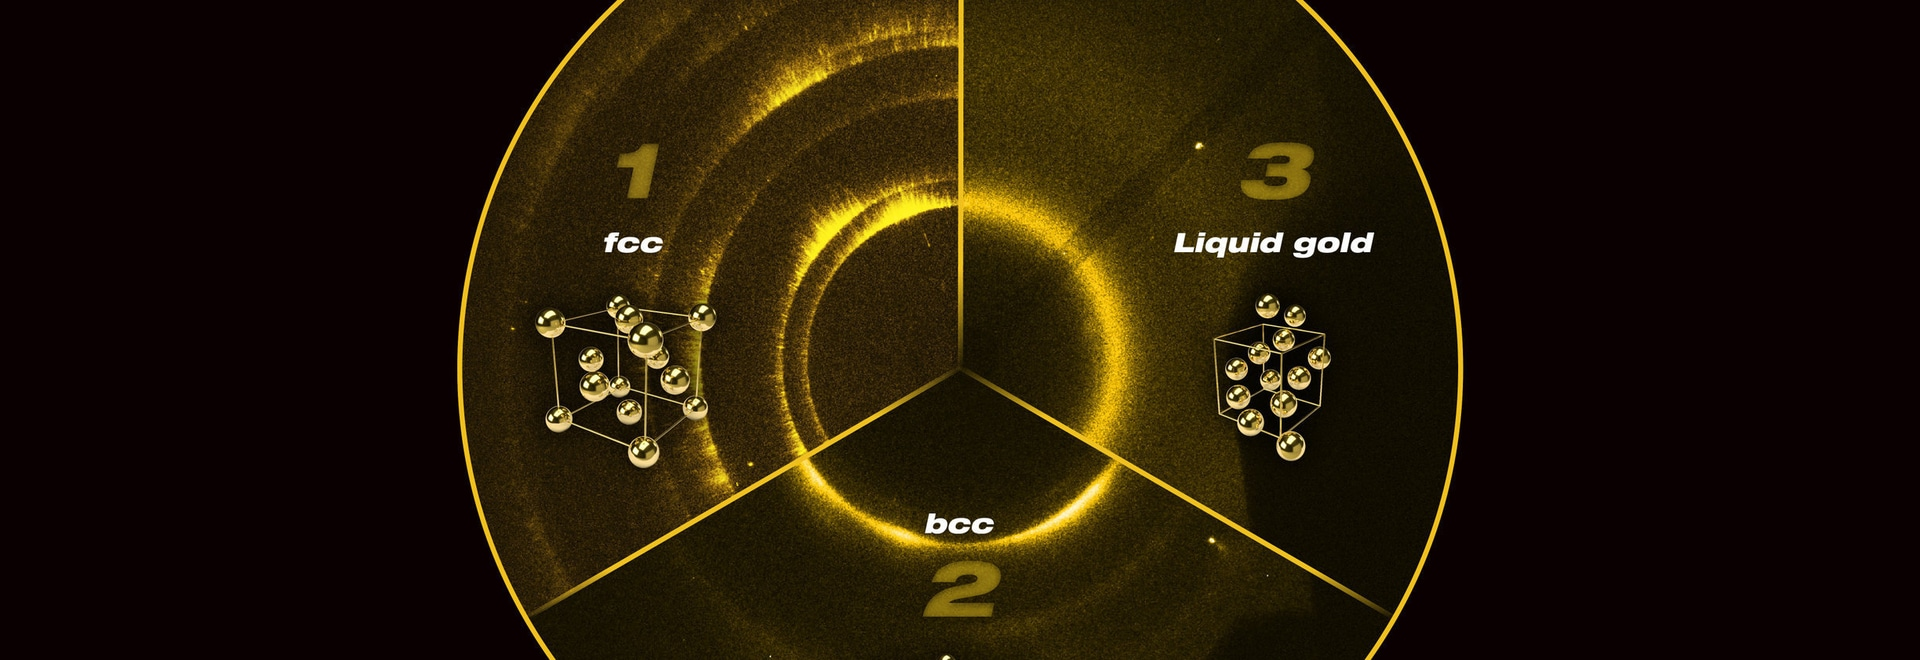 To figure out the structure of gold at extreme conditions, researchers hit the gold with x-rays and detected where they bounced off (the signals for the different structures can be seen in this ima...